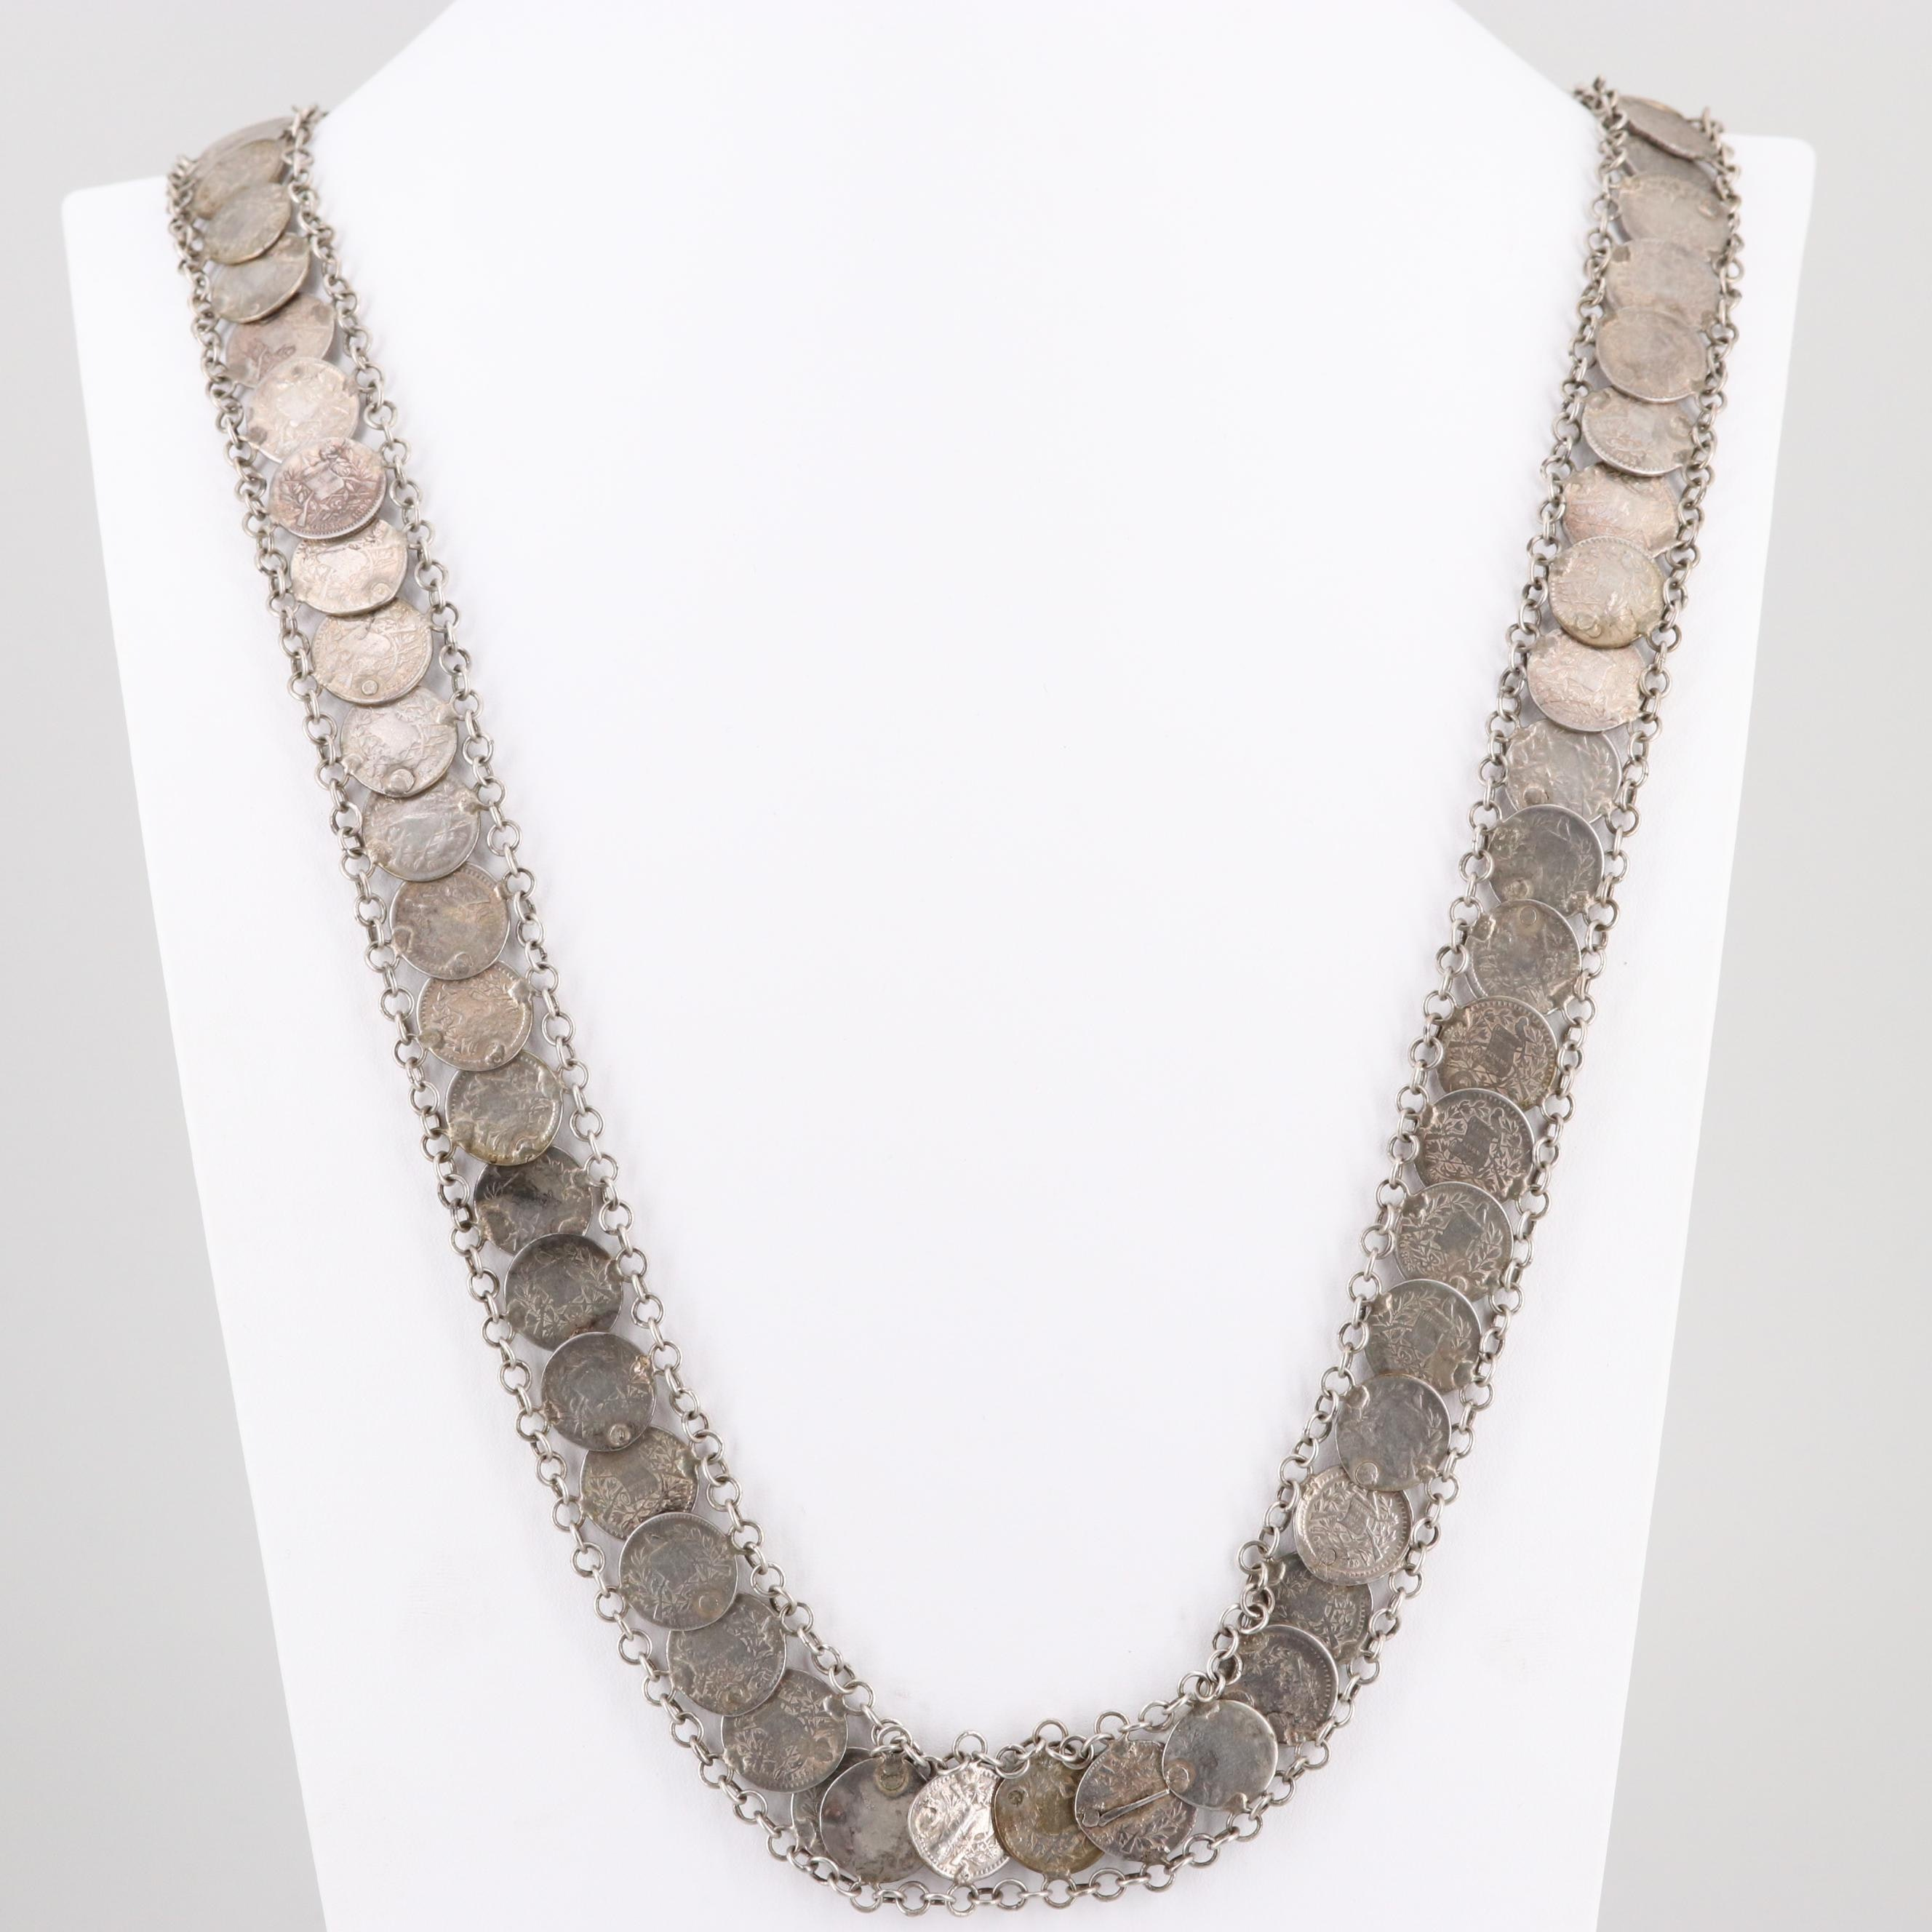 Antique Guatemalan, Spanish, and Mexican Silver Coin Necklace